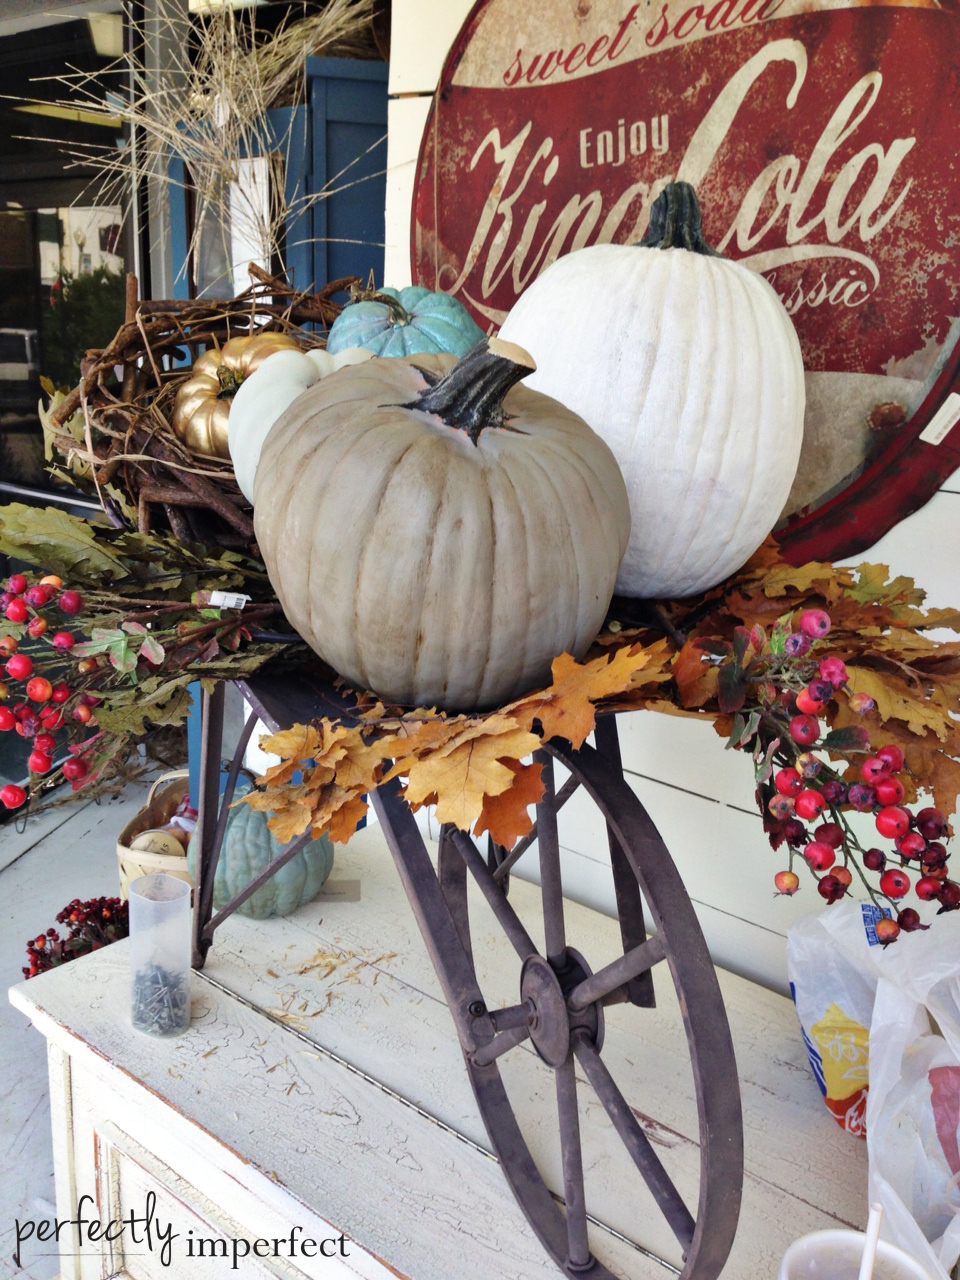 Perfectly Imperfect-Decorating The Fall Window